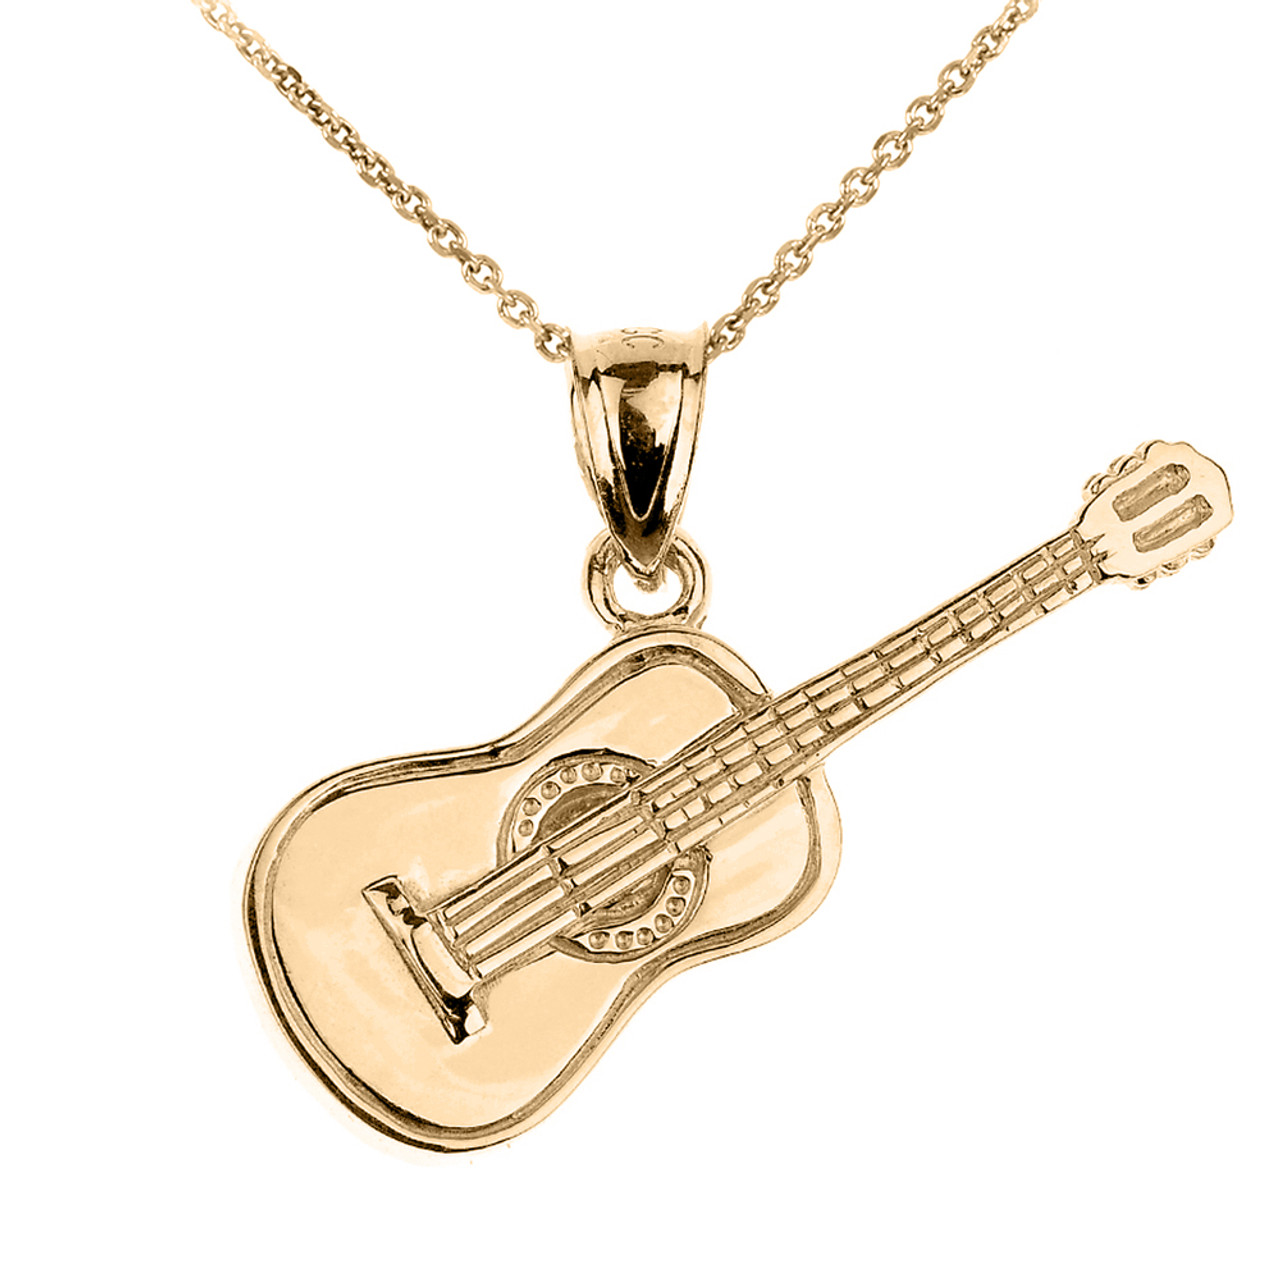 chain necklace gift set jewellery itm uk ebay boxed guitar s pendant gold solid